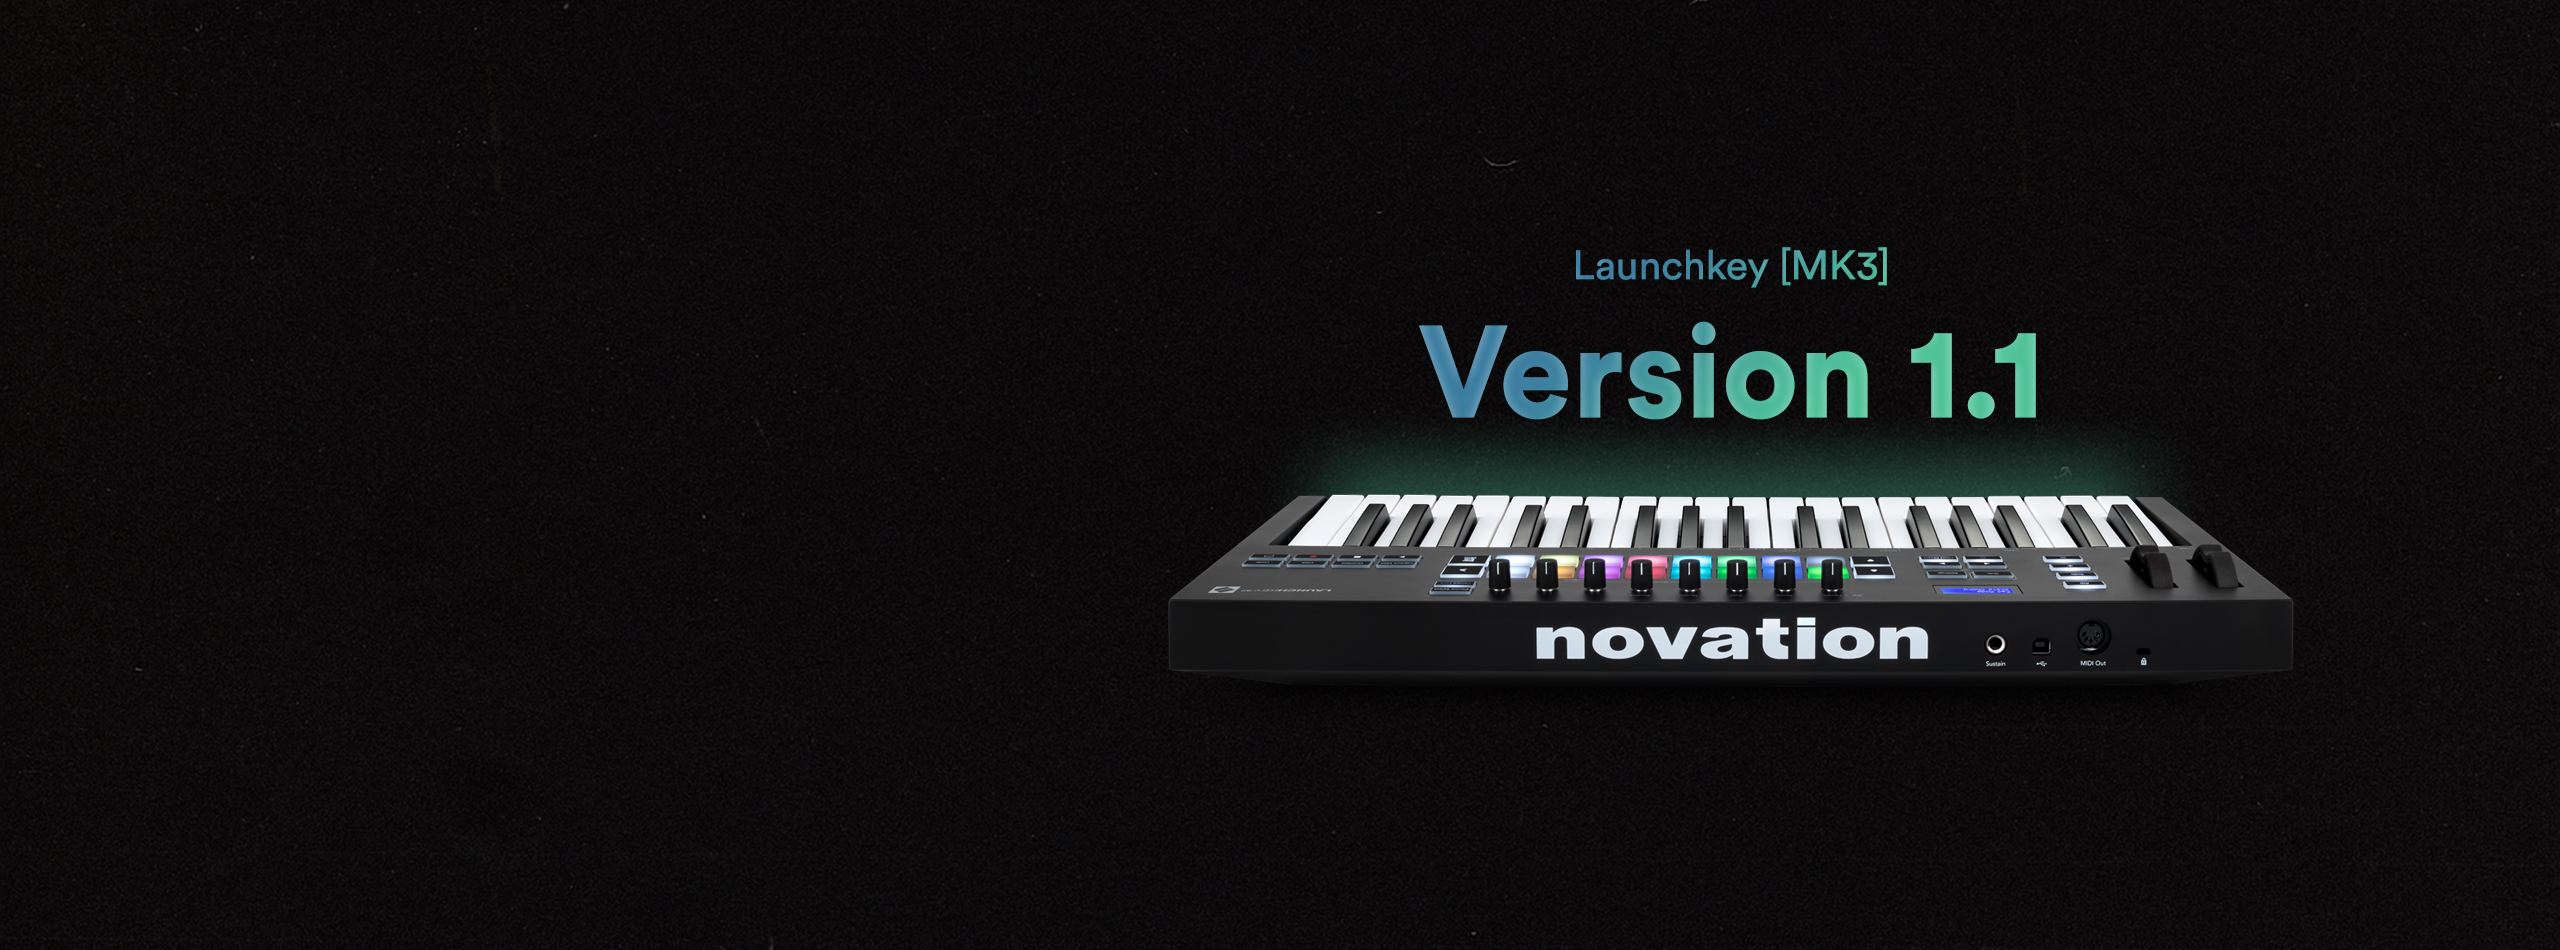 Novation-Launchkeyv1.1Firmware